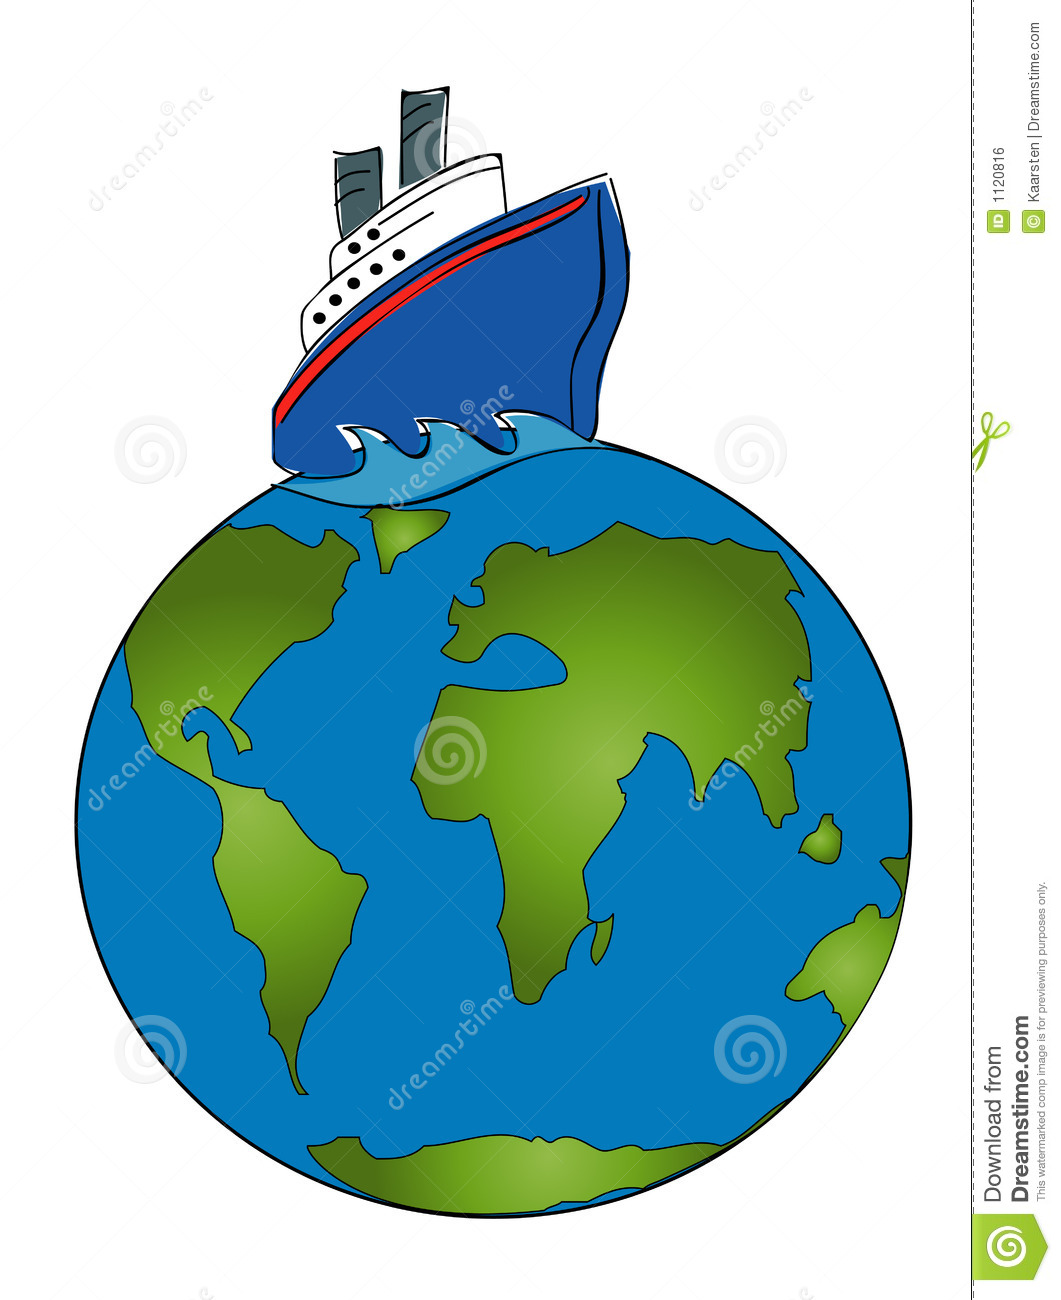 Cruise Around The World Royalty Free Stock Image - Image: 1120816